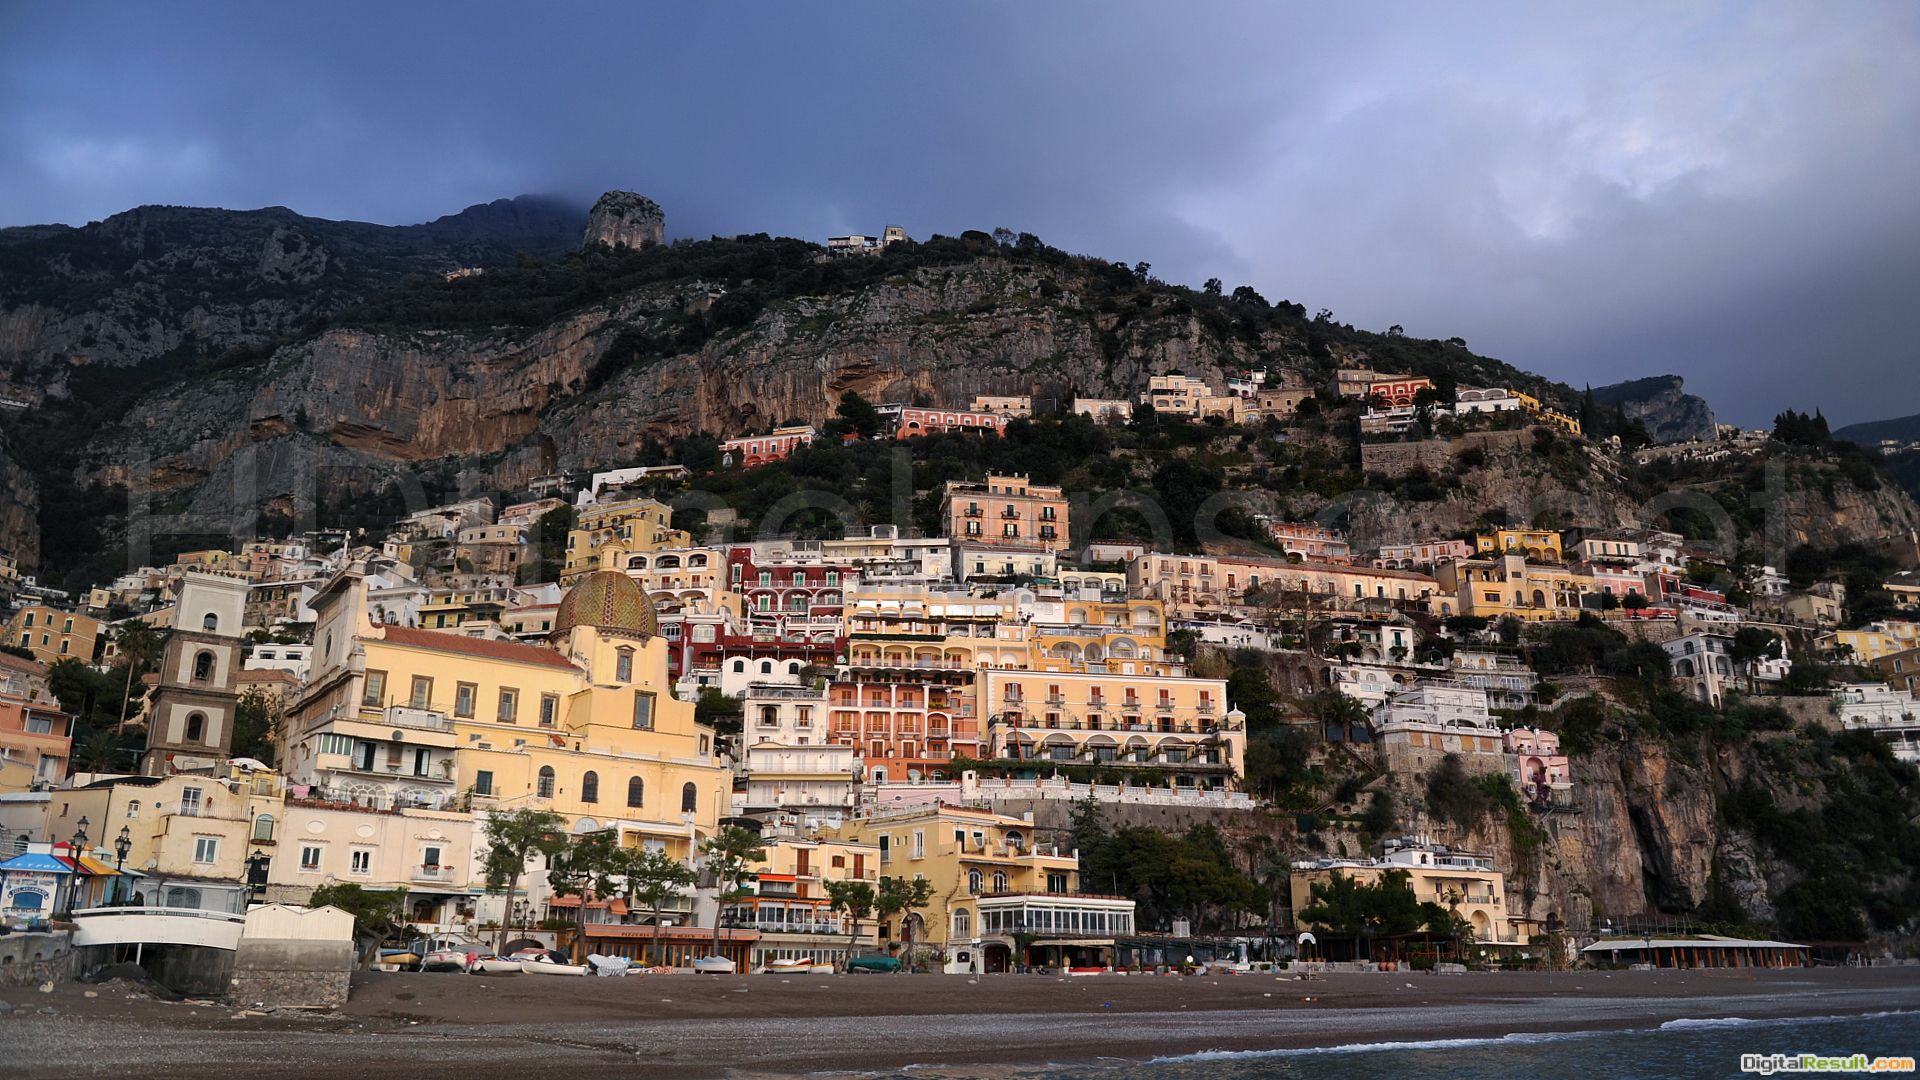 Houses on the cliff at the resort in Amalfi, Italy wallpapers and 1870